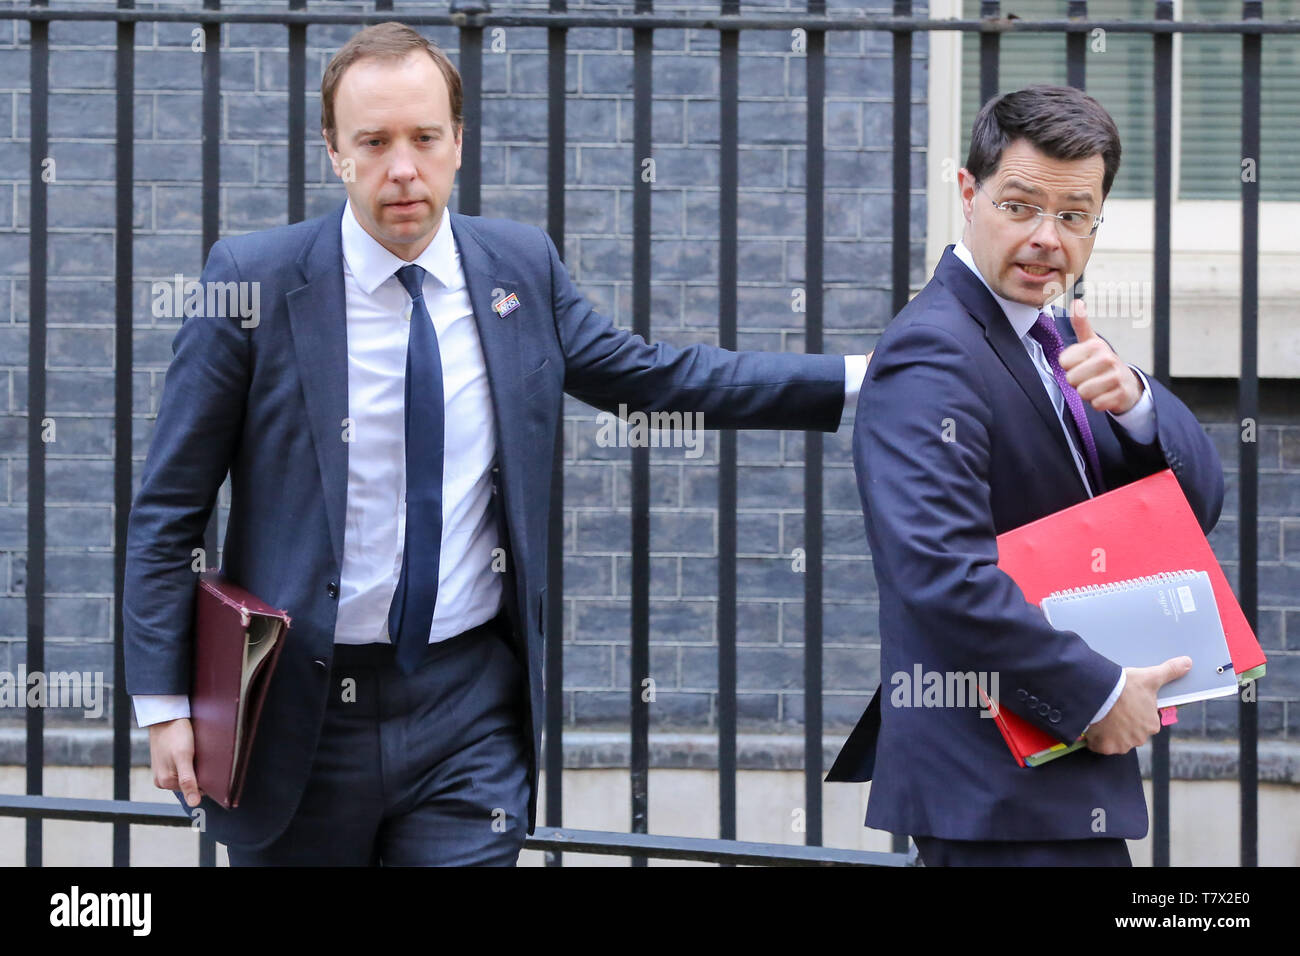 Communities Secretary James Brokenshire (R) and Secretary of State for Health and Social Care (L) Matthew Hancock seen in Downing Street. On 14 June 2017, a fire broke out in the 24-storey Grenfell Tower block of flats in North Kensington, West London where 72 people died, more than 70 others were injured and 223 people escaped. The UK Government is to fund an estimated £200 million to replacement of unsafe Grenfell style cladding on around 170 high-rise private residential buildings after private building owners failed to take action. Communities Secretary James Brokenshire said inaction from - Stock Image